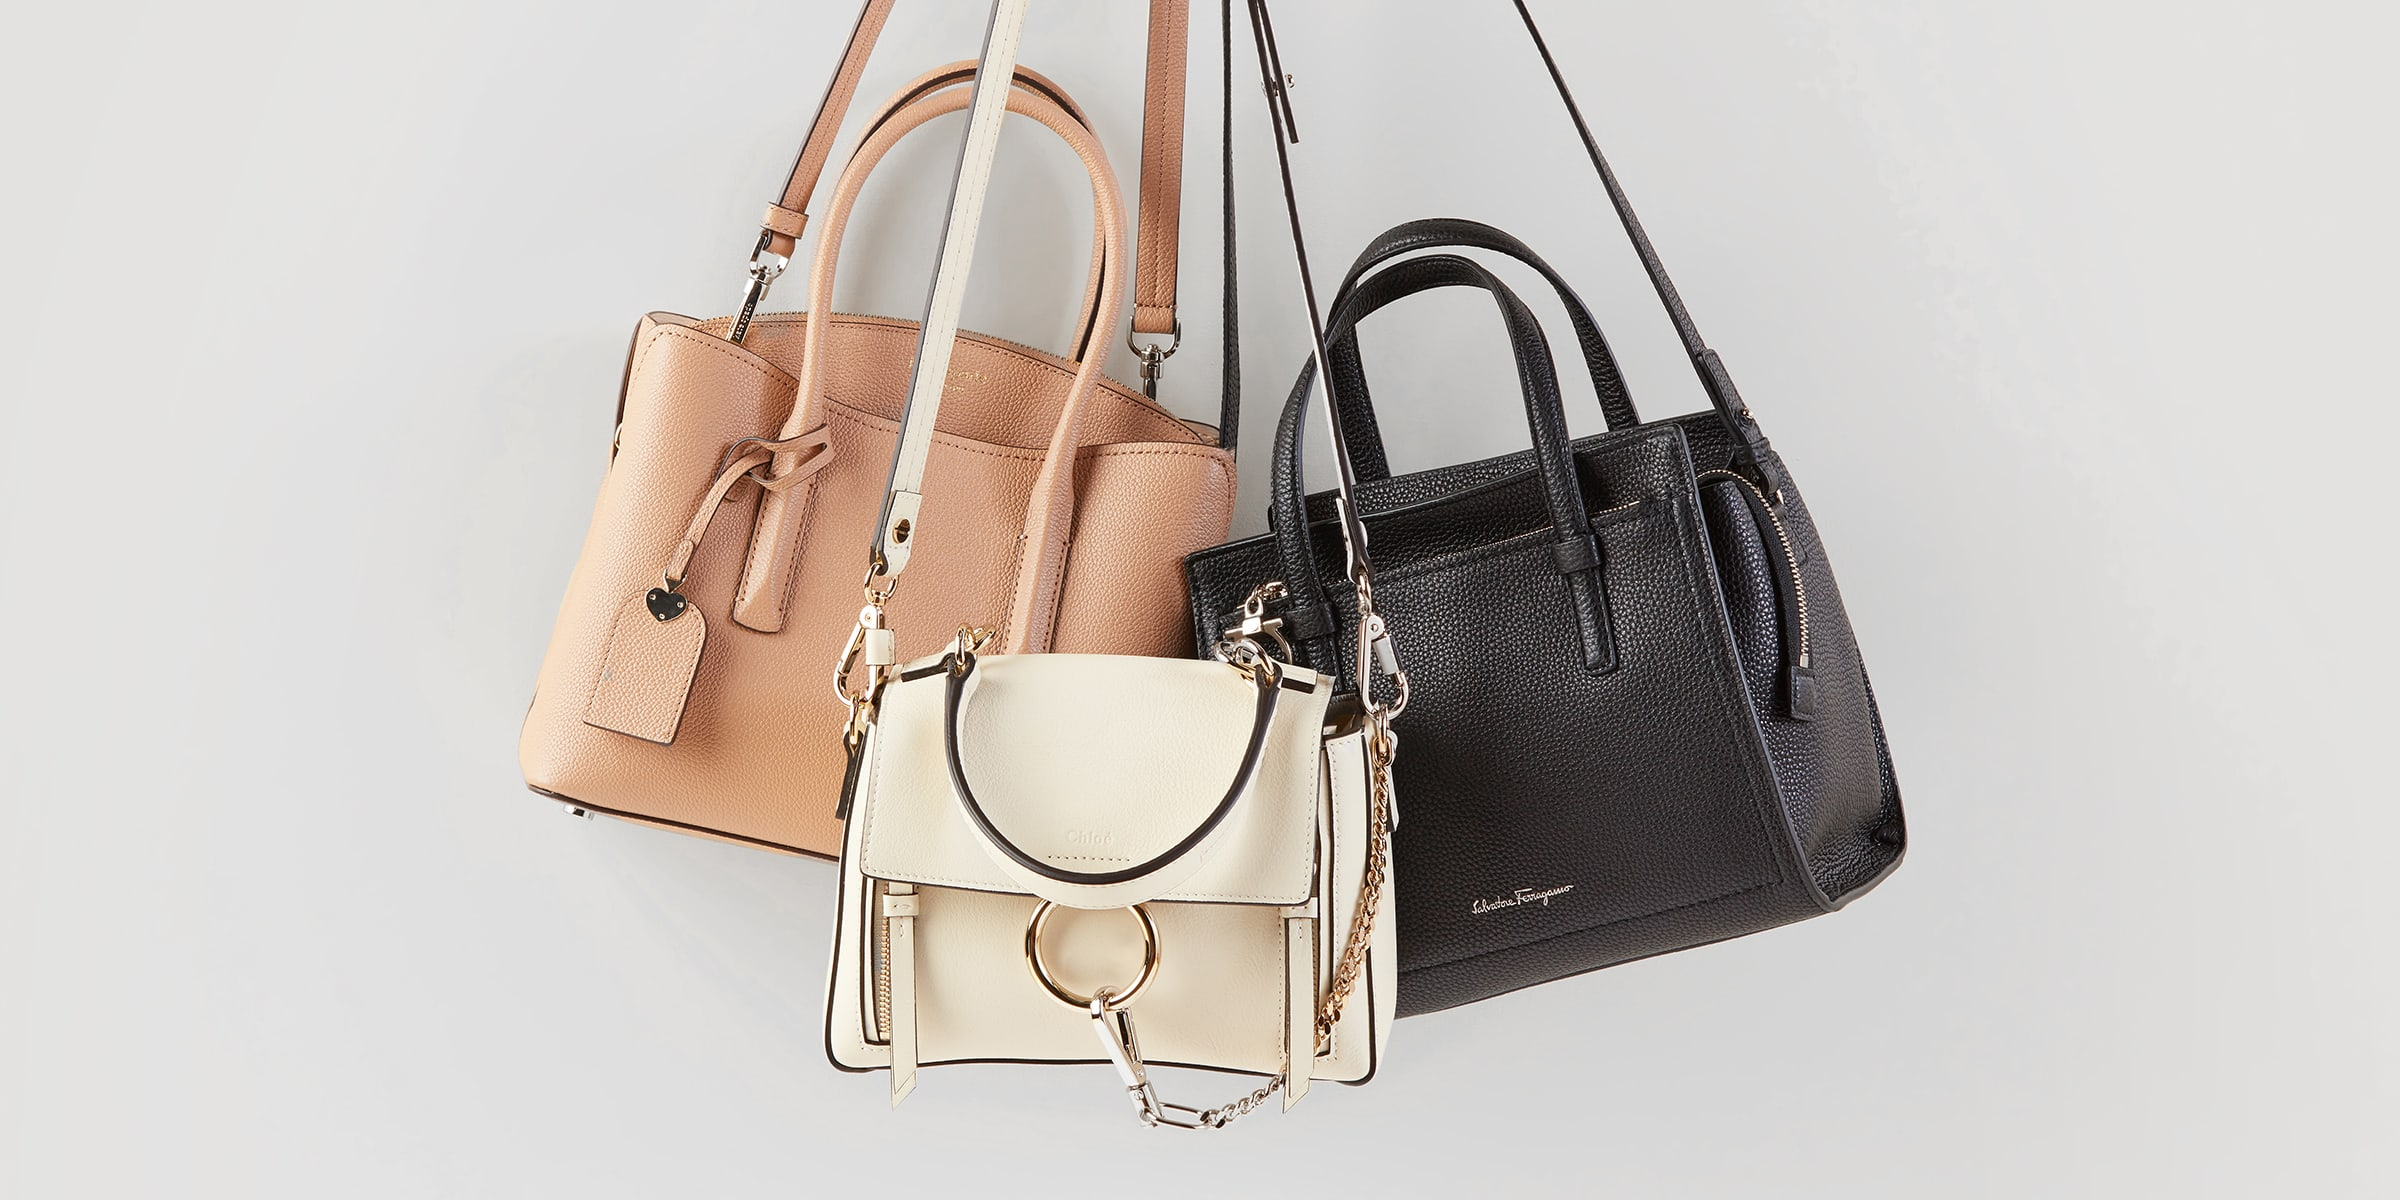 Different types of purses in neutral tones